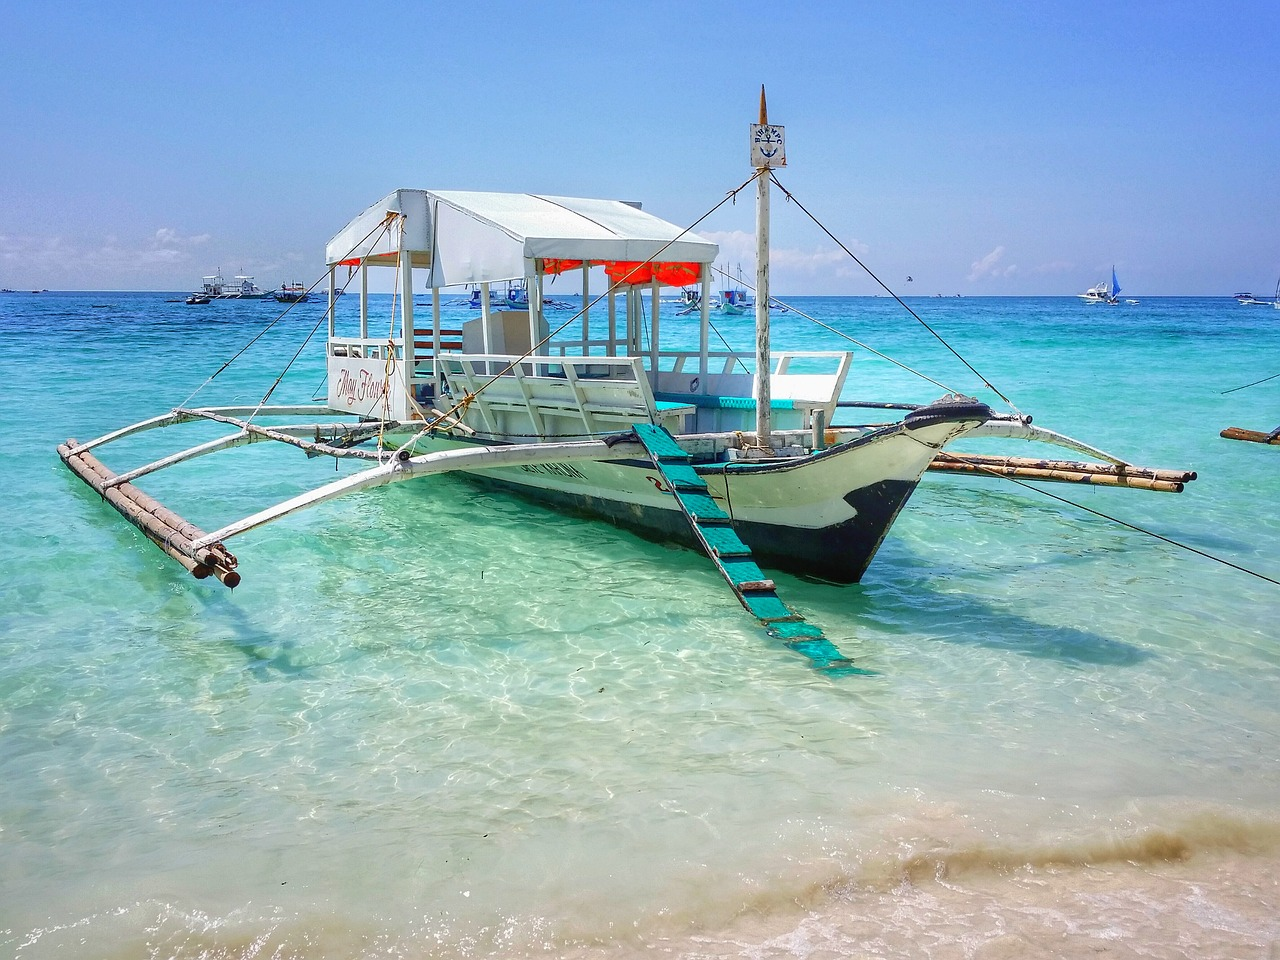 Chartering a boat and exploring is the way to romance in Boracay.